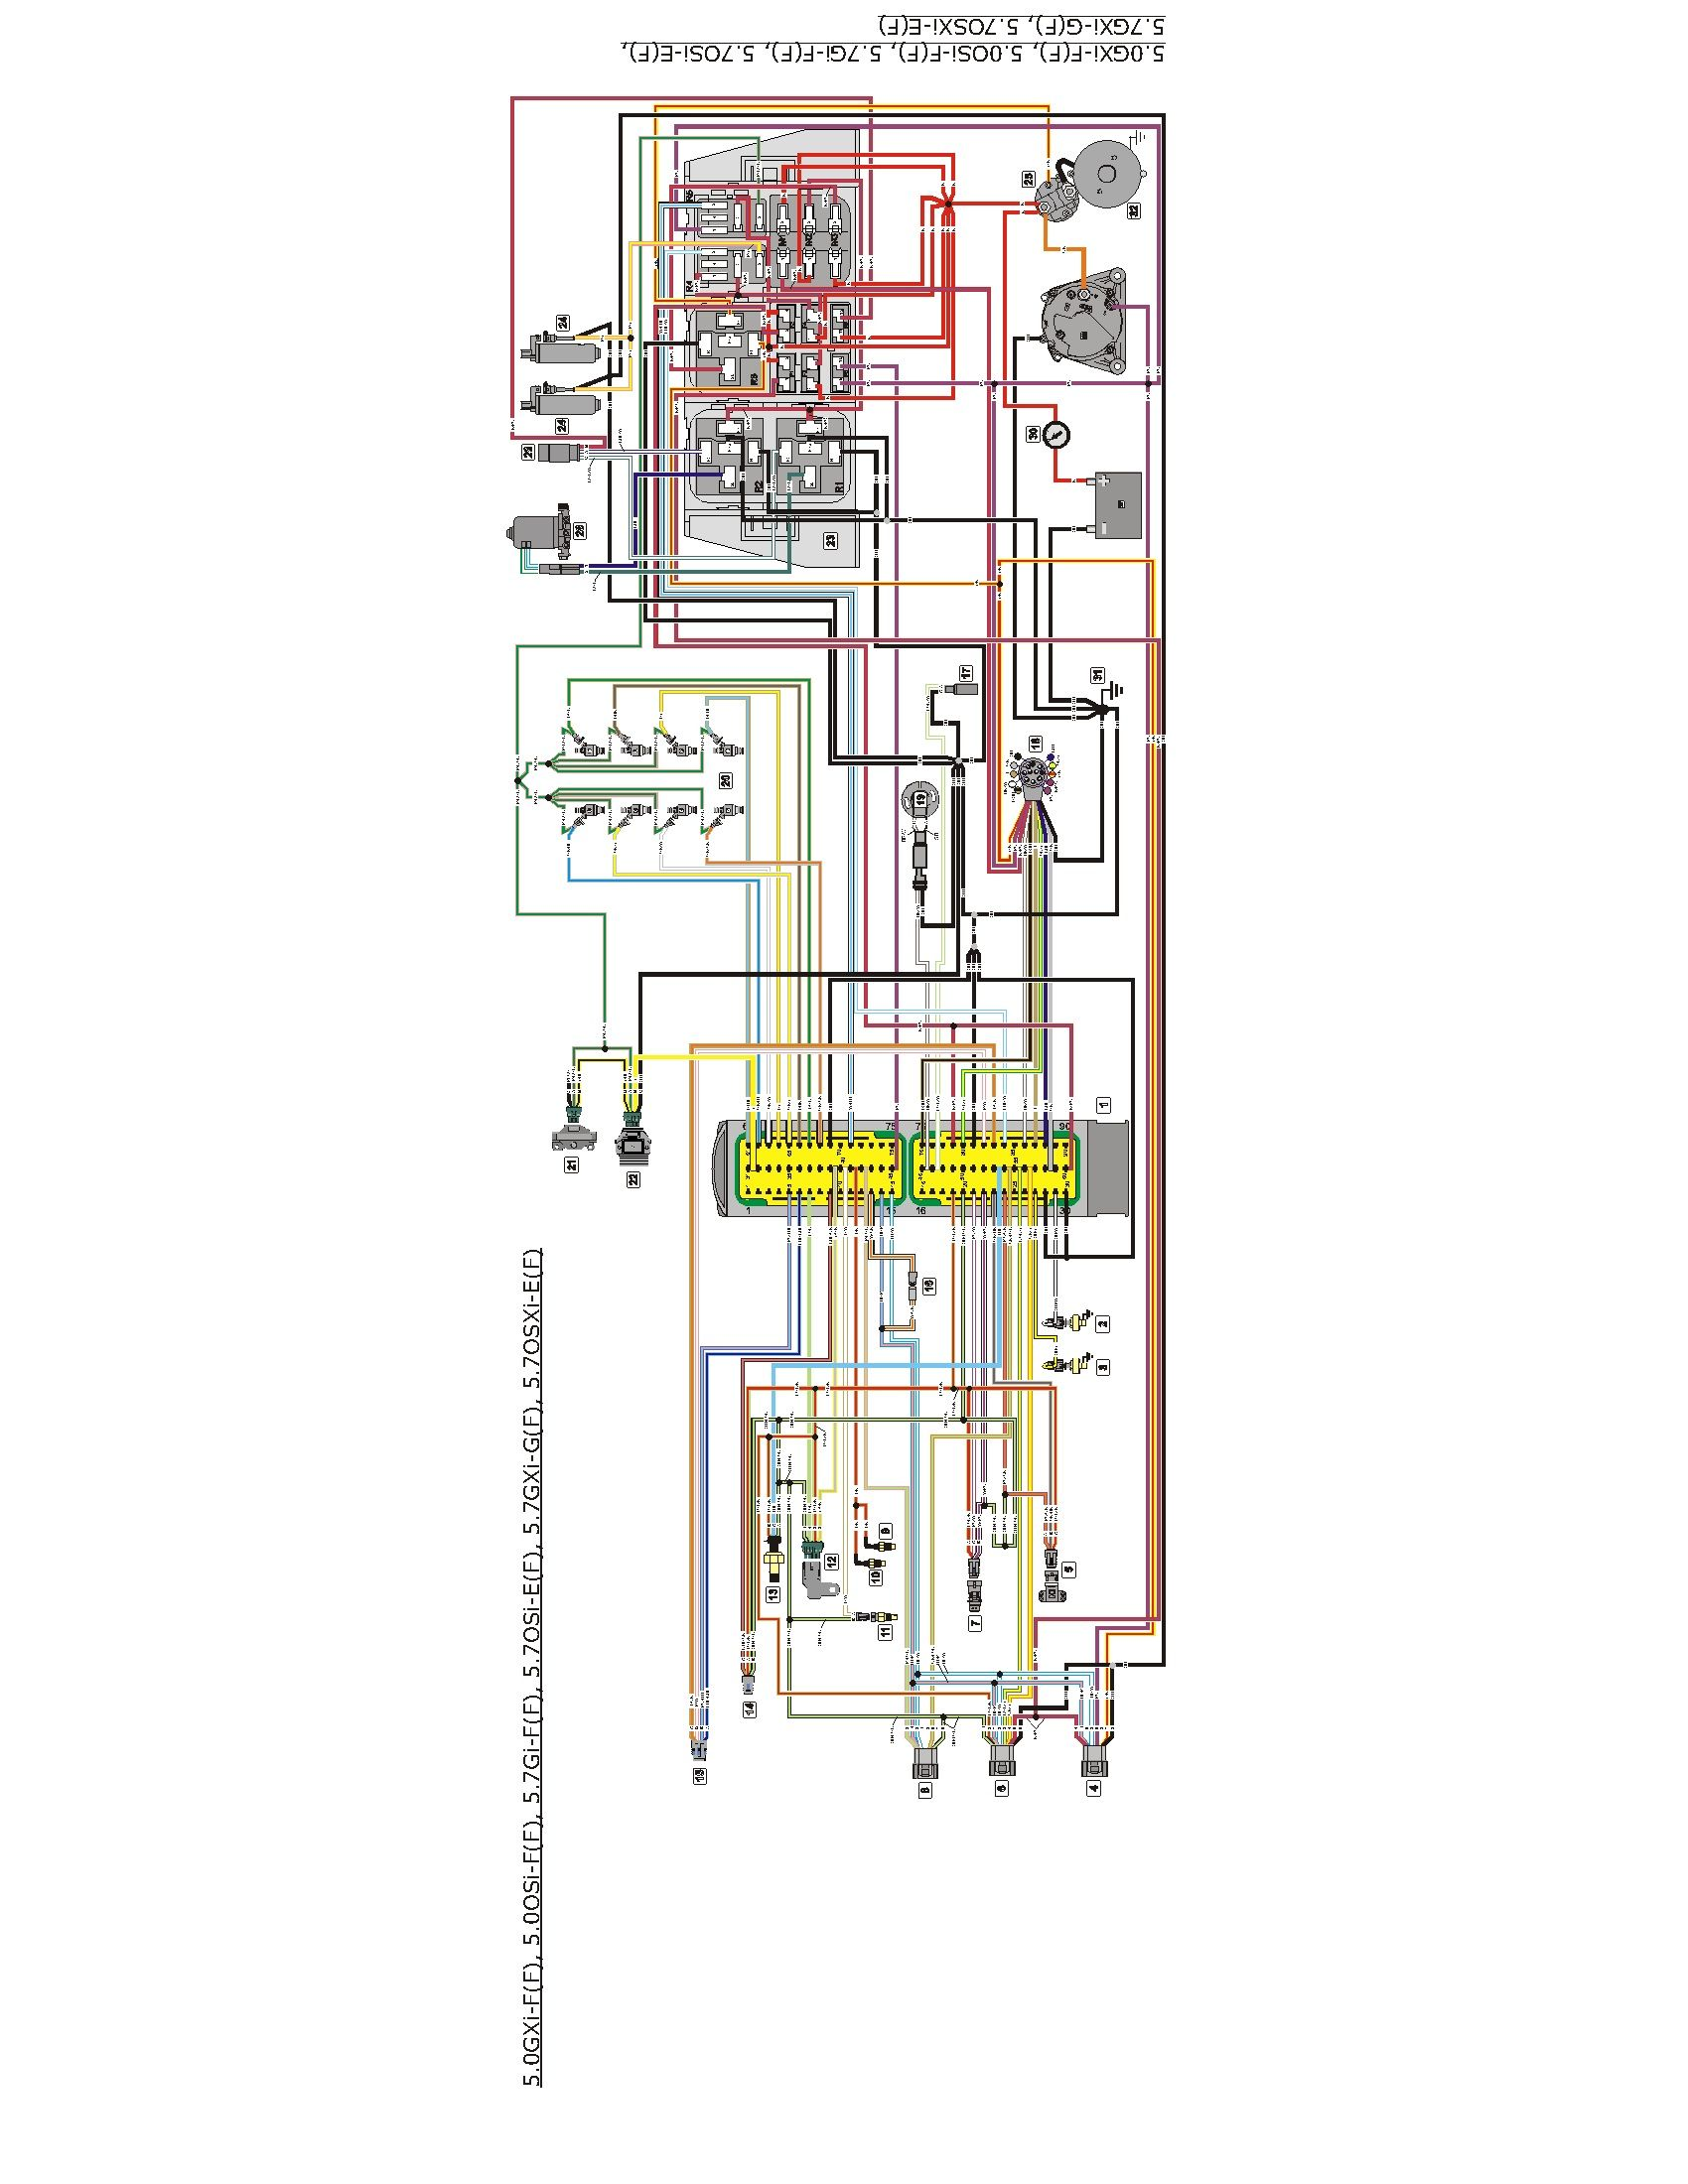 38e0106861e0fe47e508530985b32839 volvo penta 5 7 wiring diagram simple boat wiring diagram \u2022 free 1979 volvo 242 dl wiring diagram at aneh.co